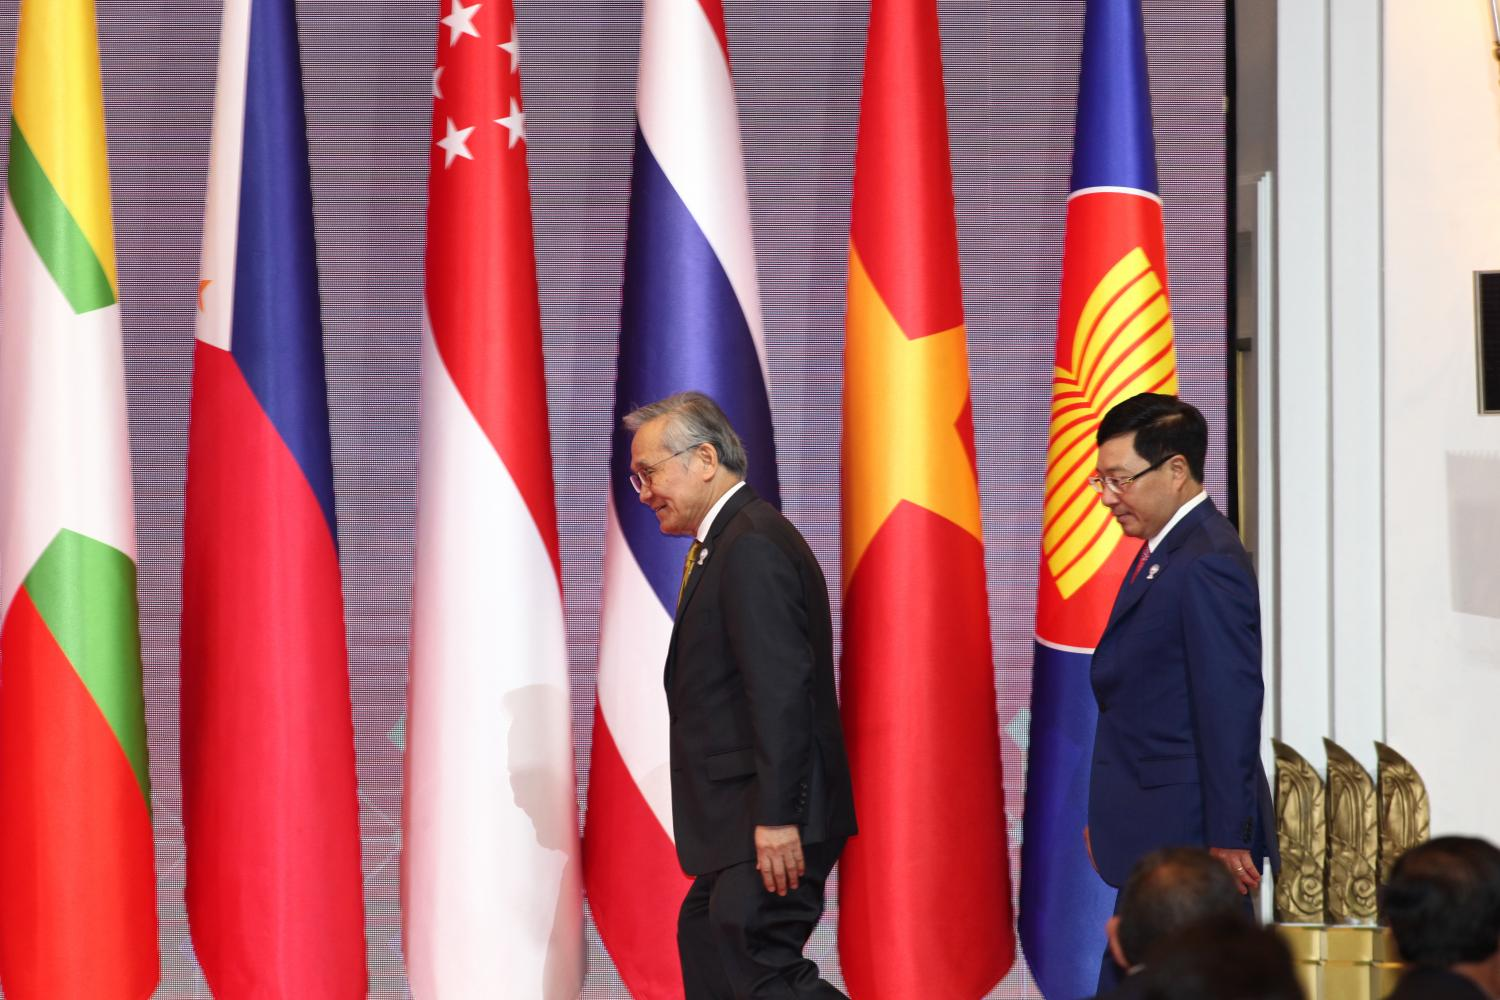 Thai Foreign Minister Don Pramudwinai, left, and Vietnamese Deputy Prime Minister and Foreign Minister Pham Binh Minh at the Asean Foreign Ministers' Meeting in Bangkok in June. Vietnam is Asean chair this year.PATTARAPONG CHATPATTARASILL